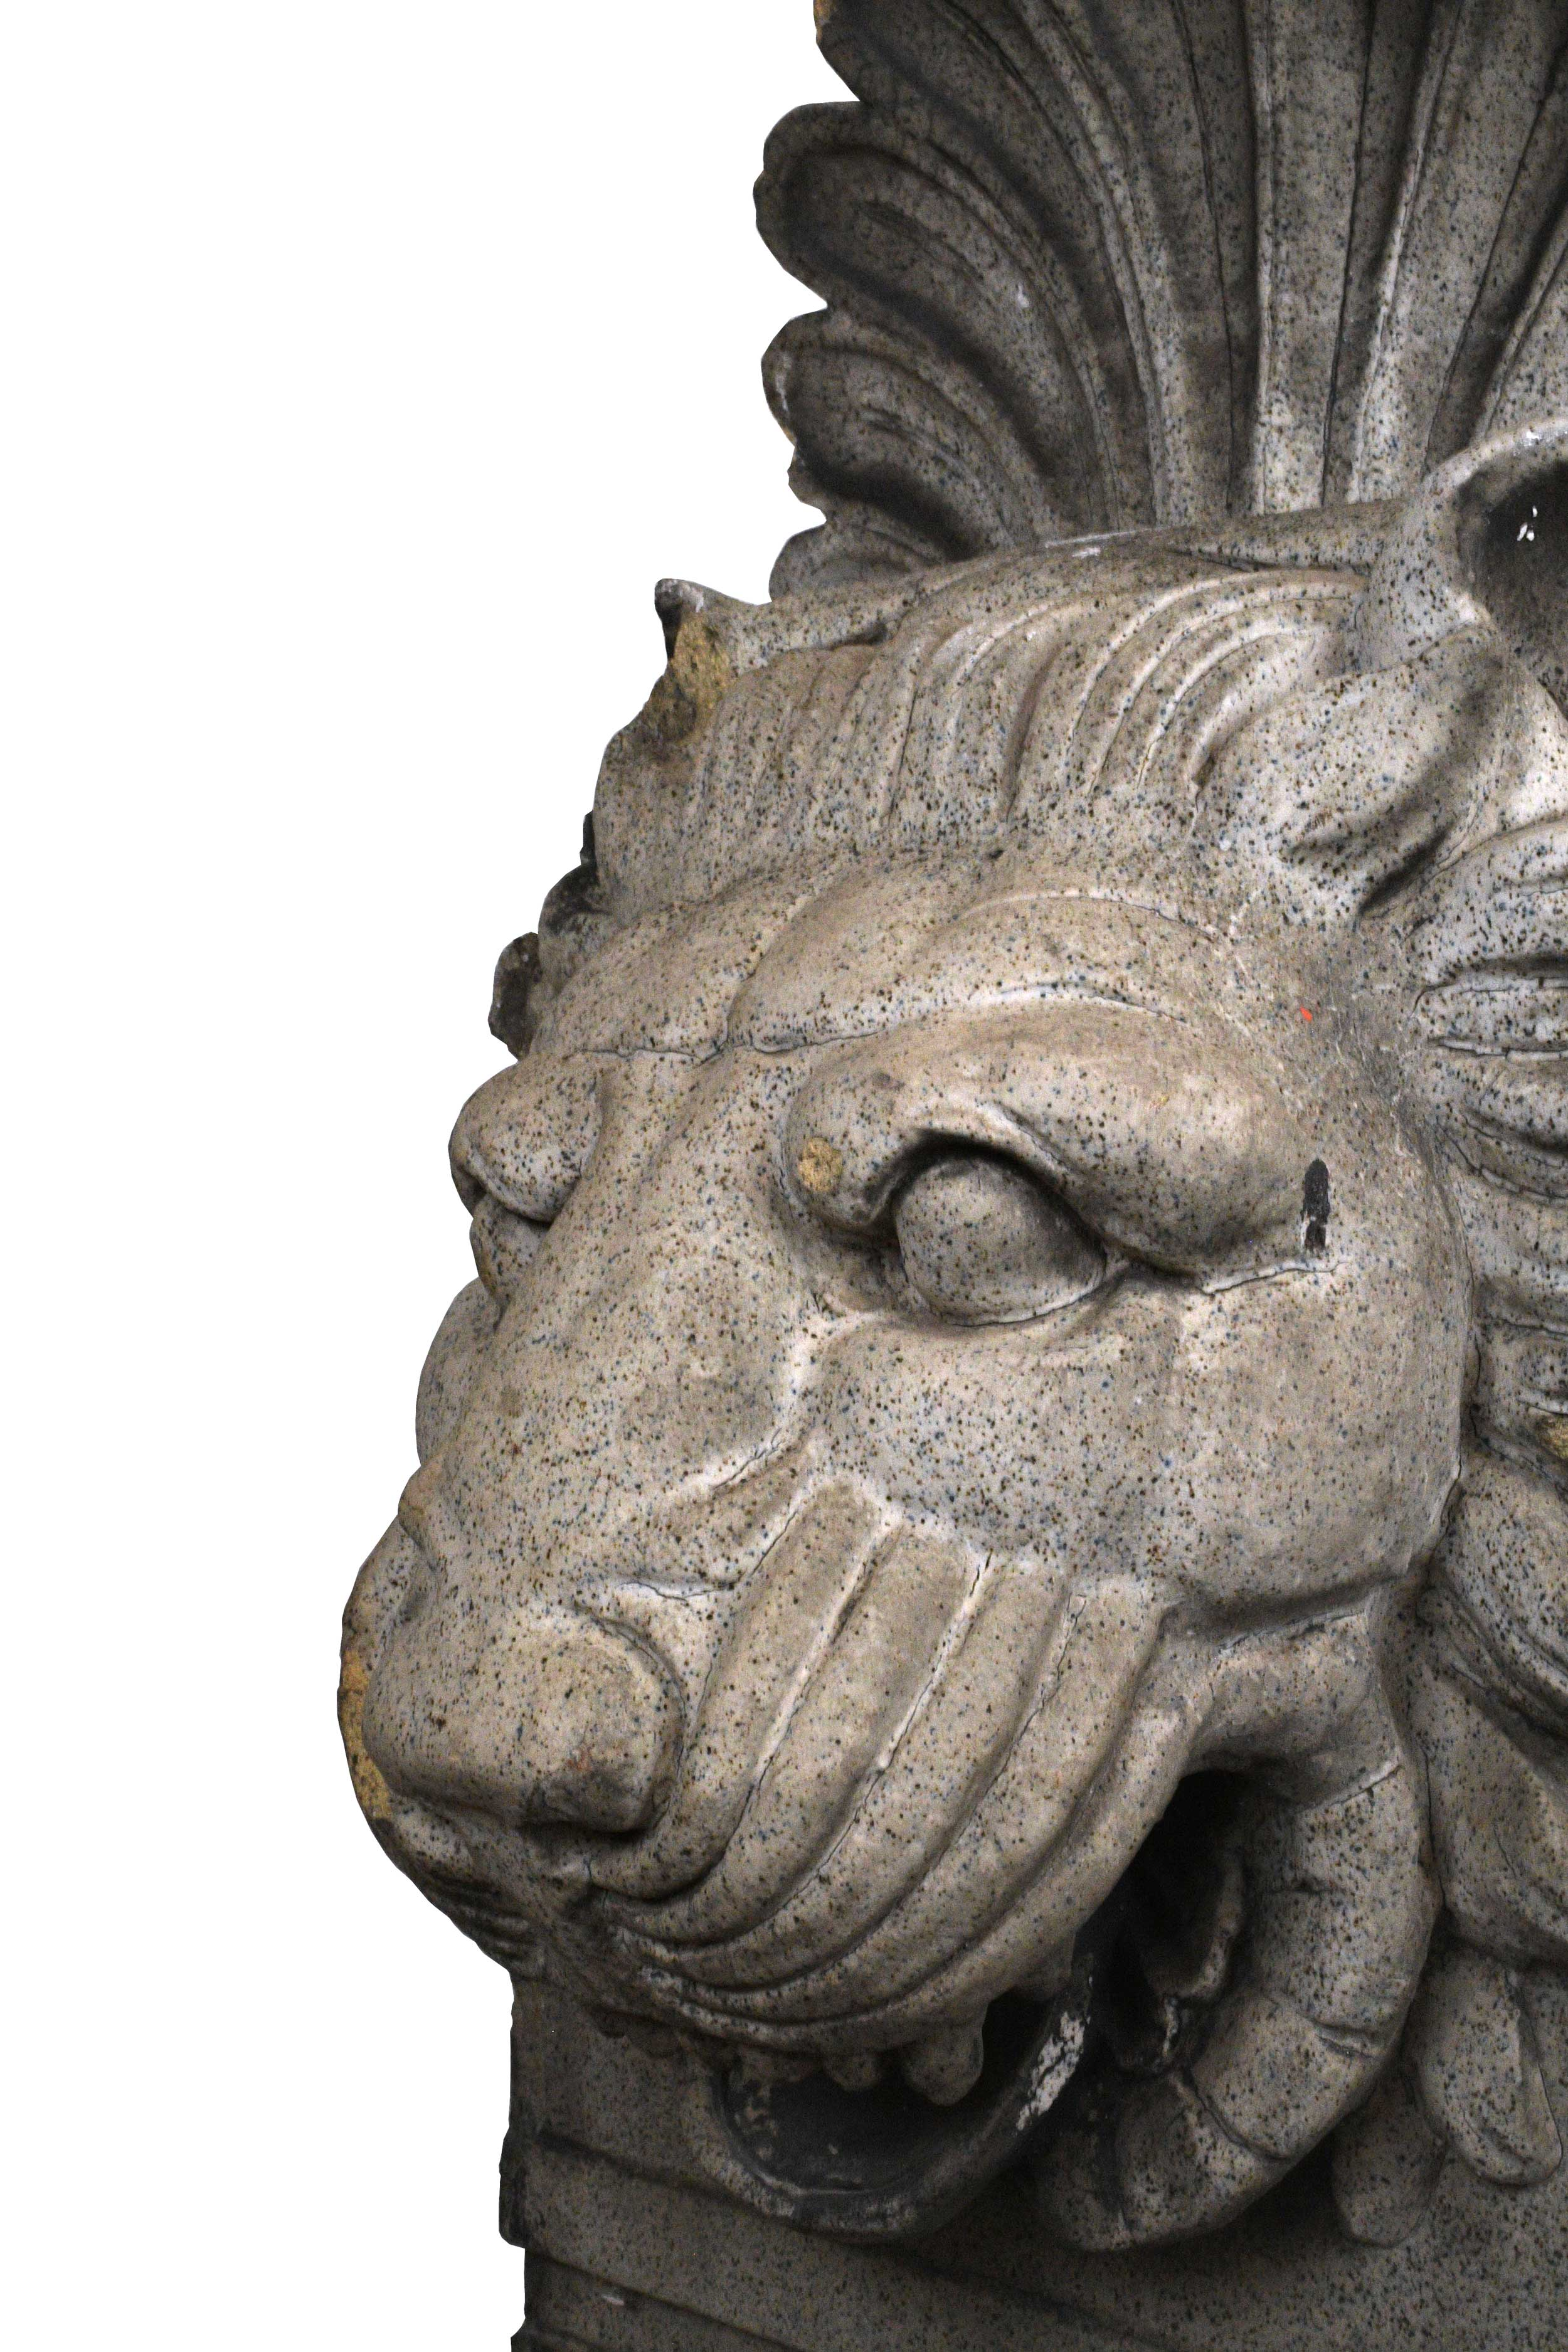 47962-stone-lion-building-ornament_side2-edit.jpg